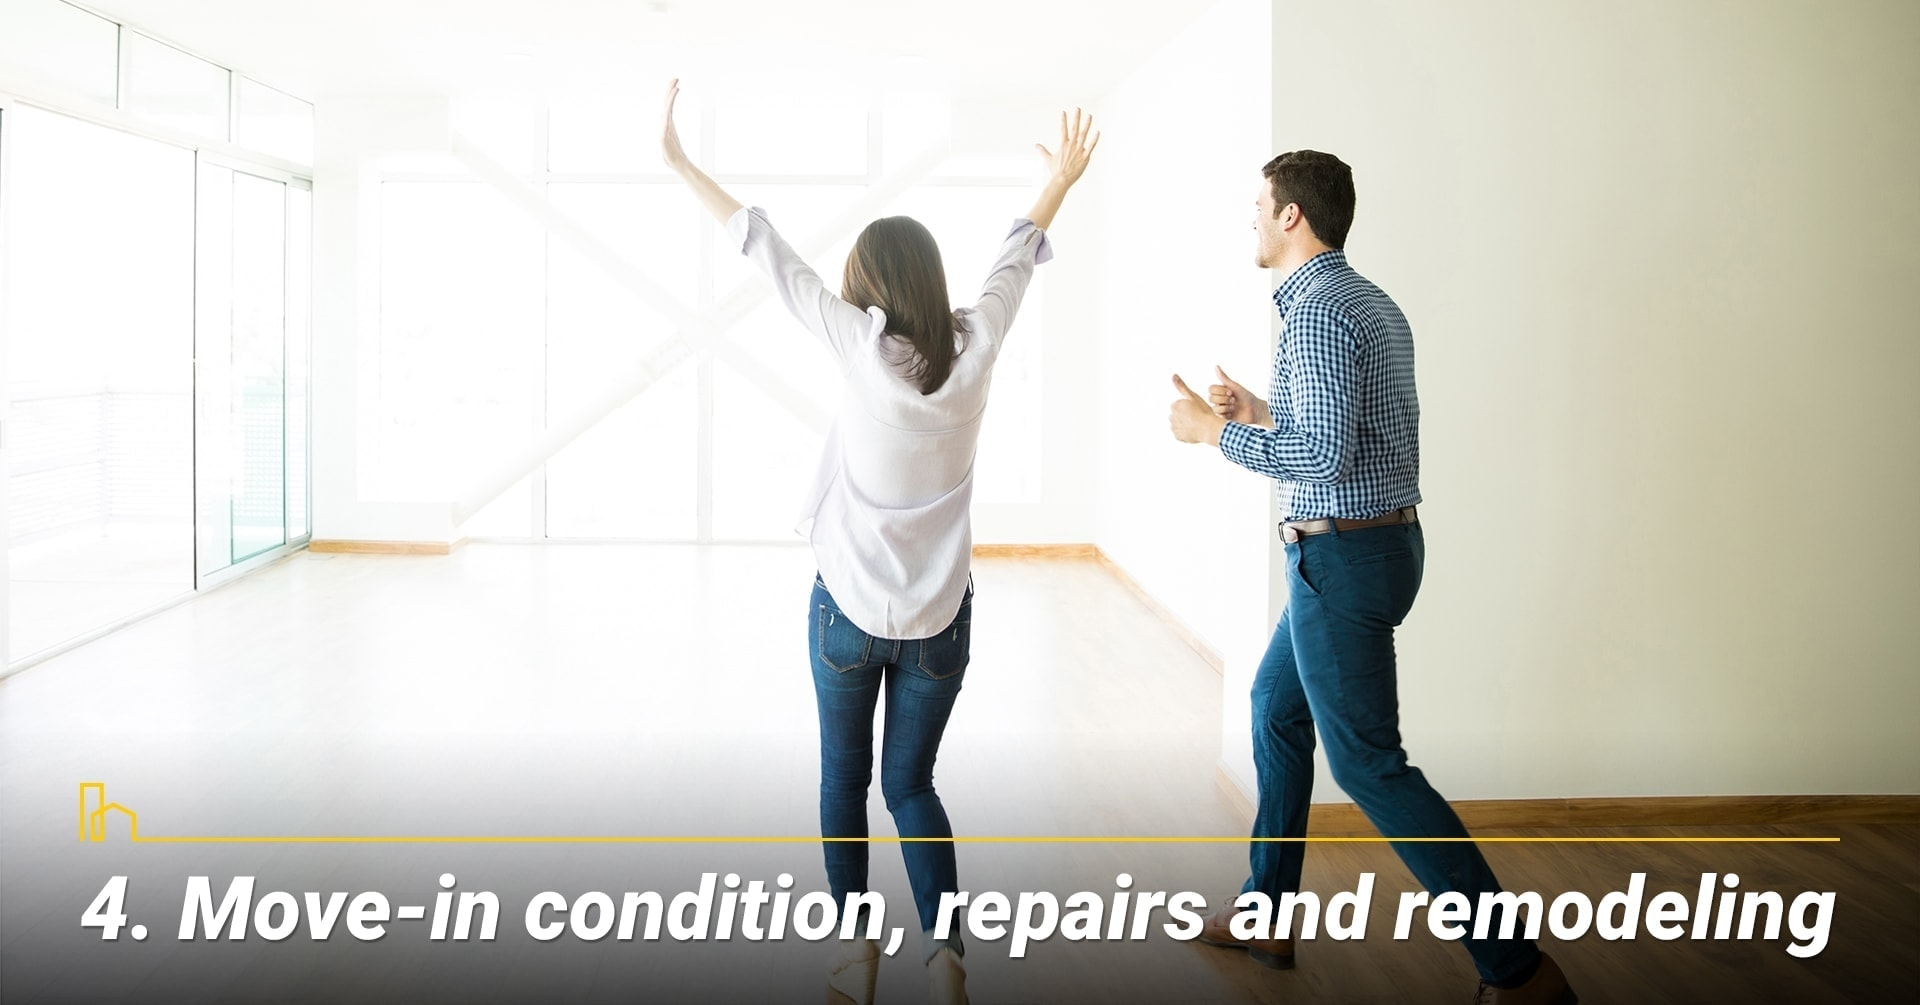 Move-in condition, repairs and remodeling, conditions of the existing home